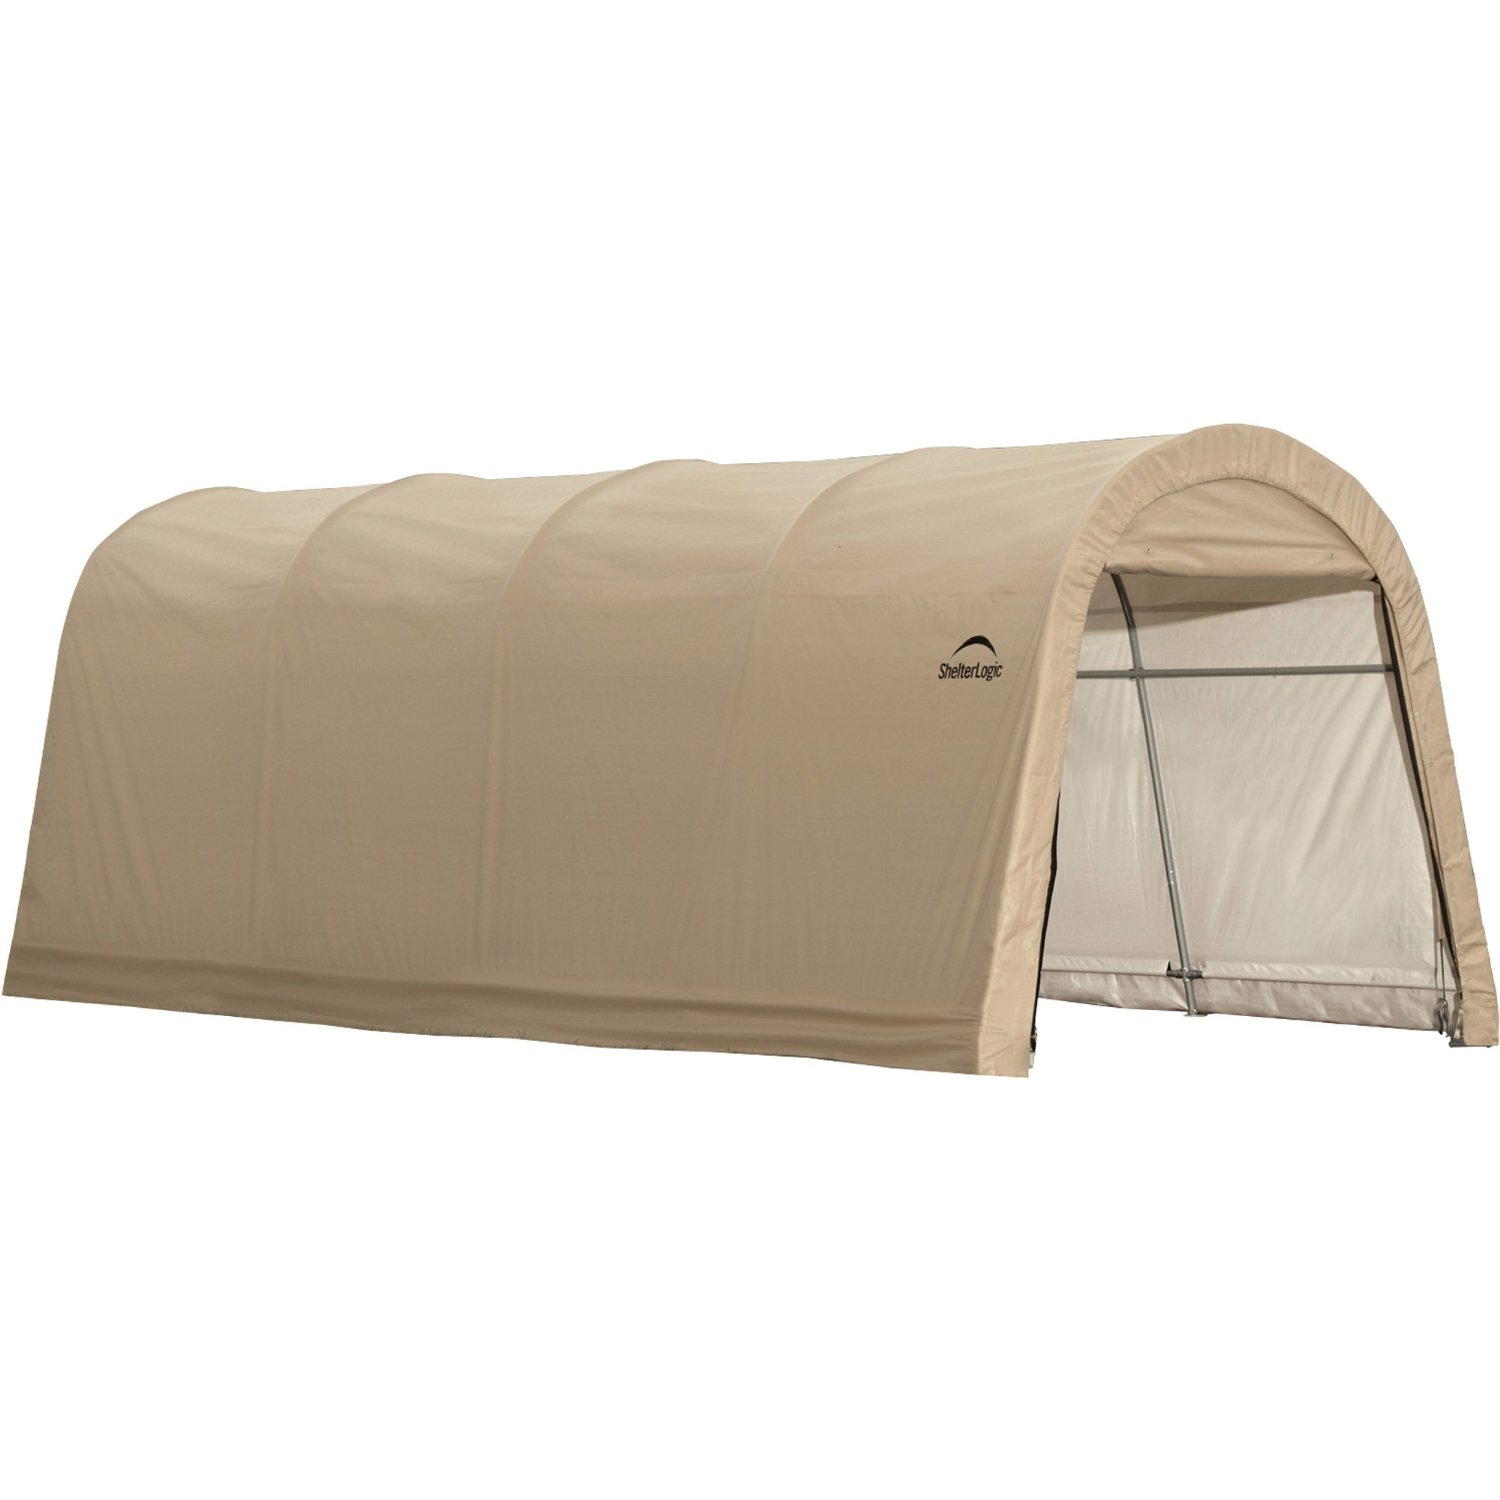 "Round Style Auto Shelter, 10'x20'x8', 1-3/8"" 5-Rib Frame, Tan Cover"